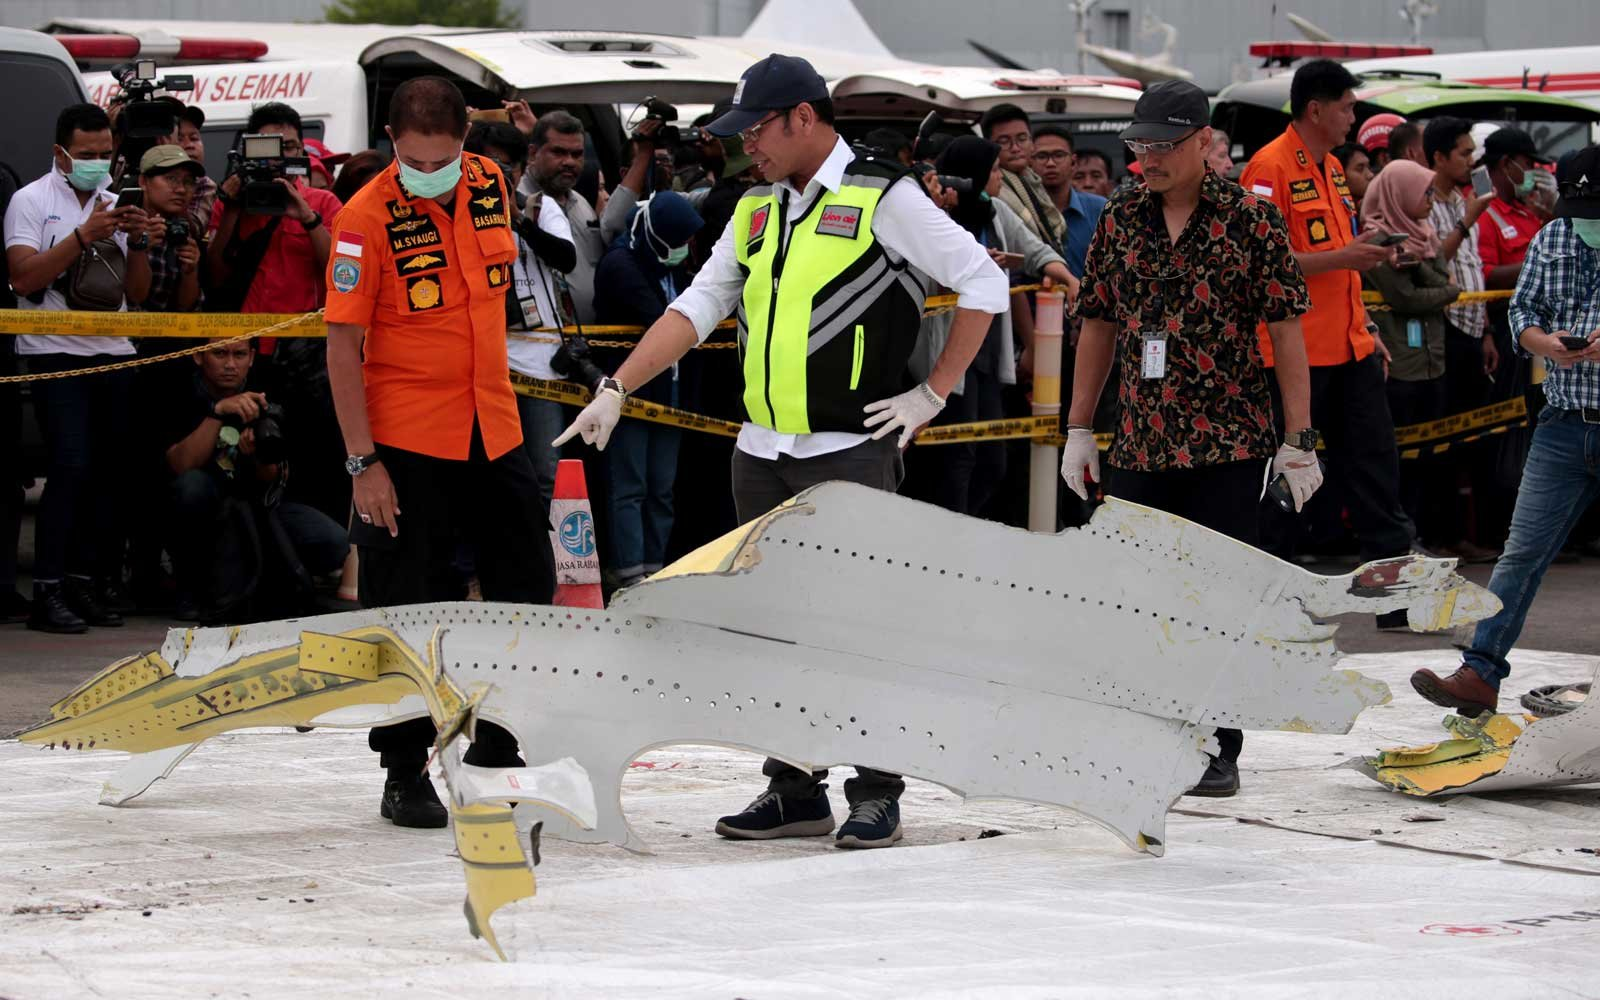 The Indonesian National Transportation Safety Committee (KNKT) members and the Indonesian National Board for Disaster Management (BNPB) members check ruins of the crashed Lion Air flight JT610 during their investigation  at Tanjung Priok port in Jakarta